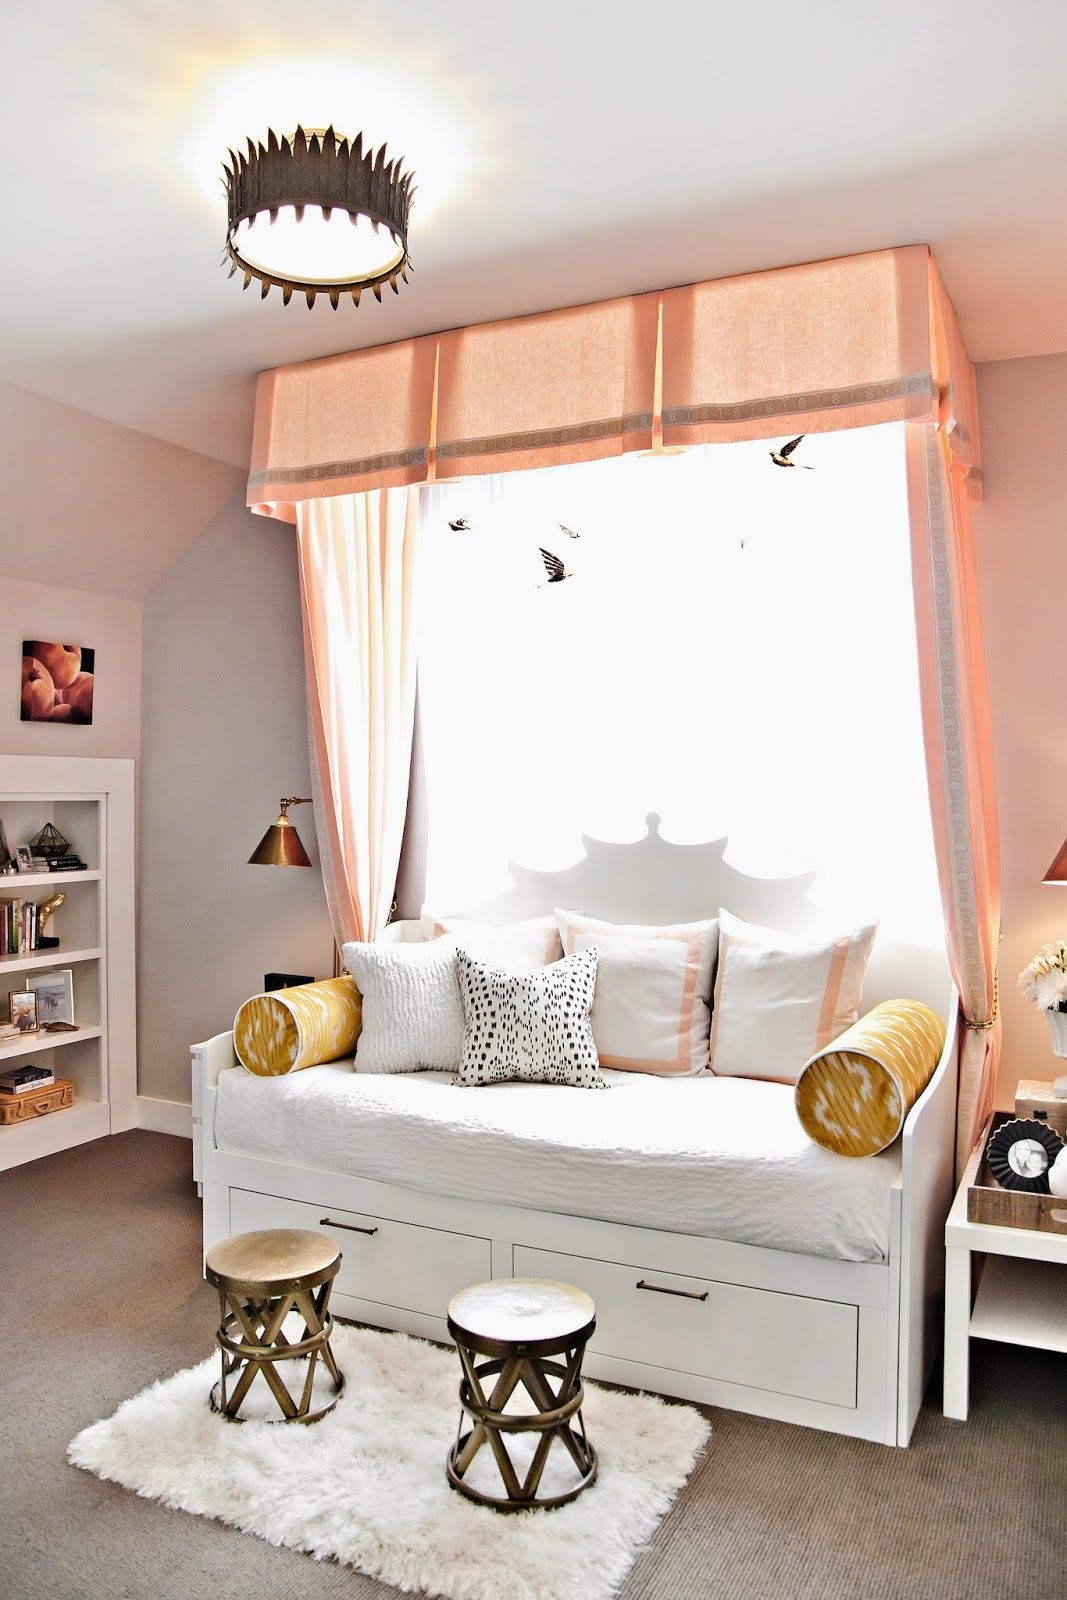 14 Fashion Forward Rooms For Every Design Lover